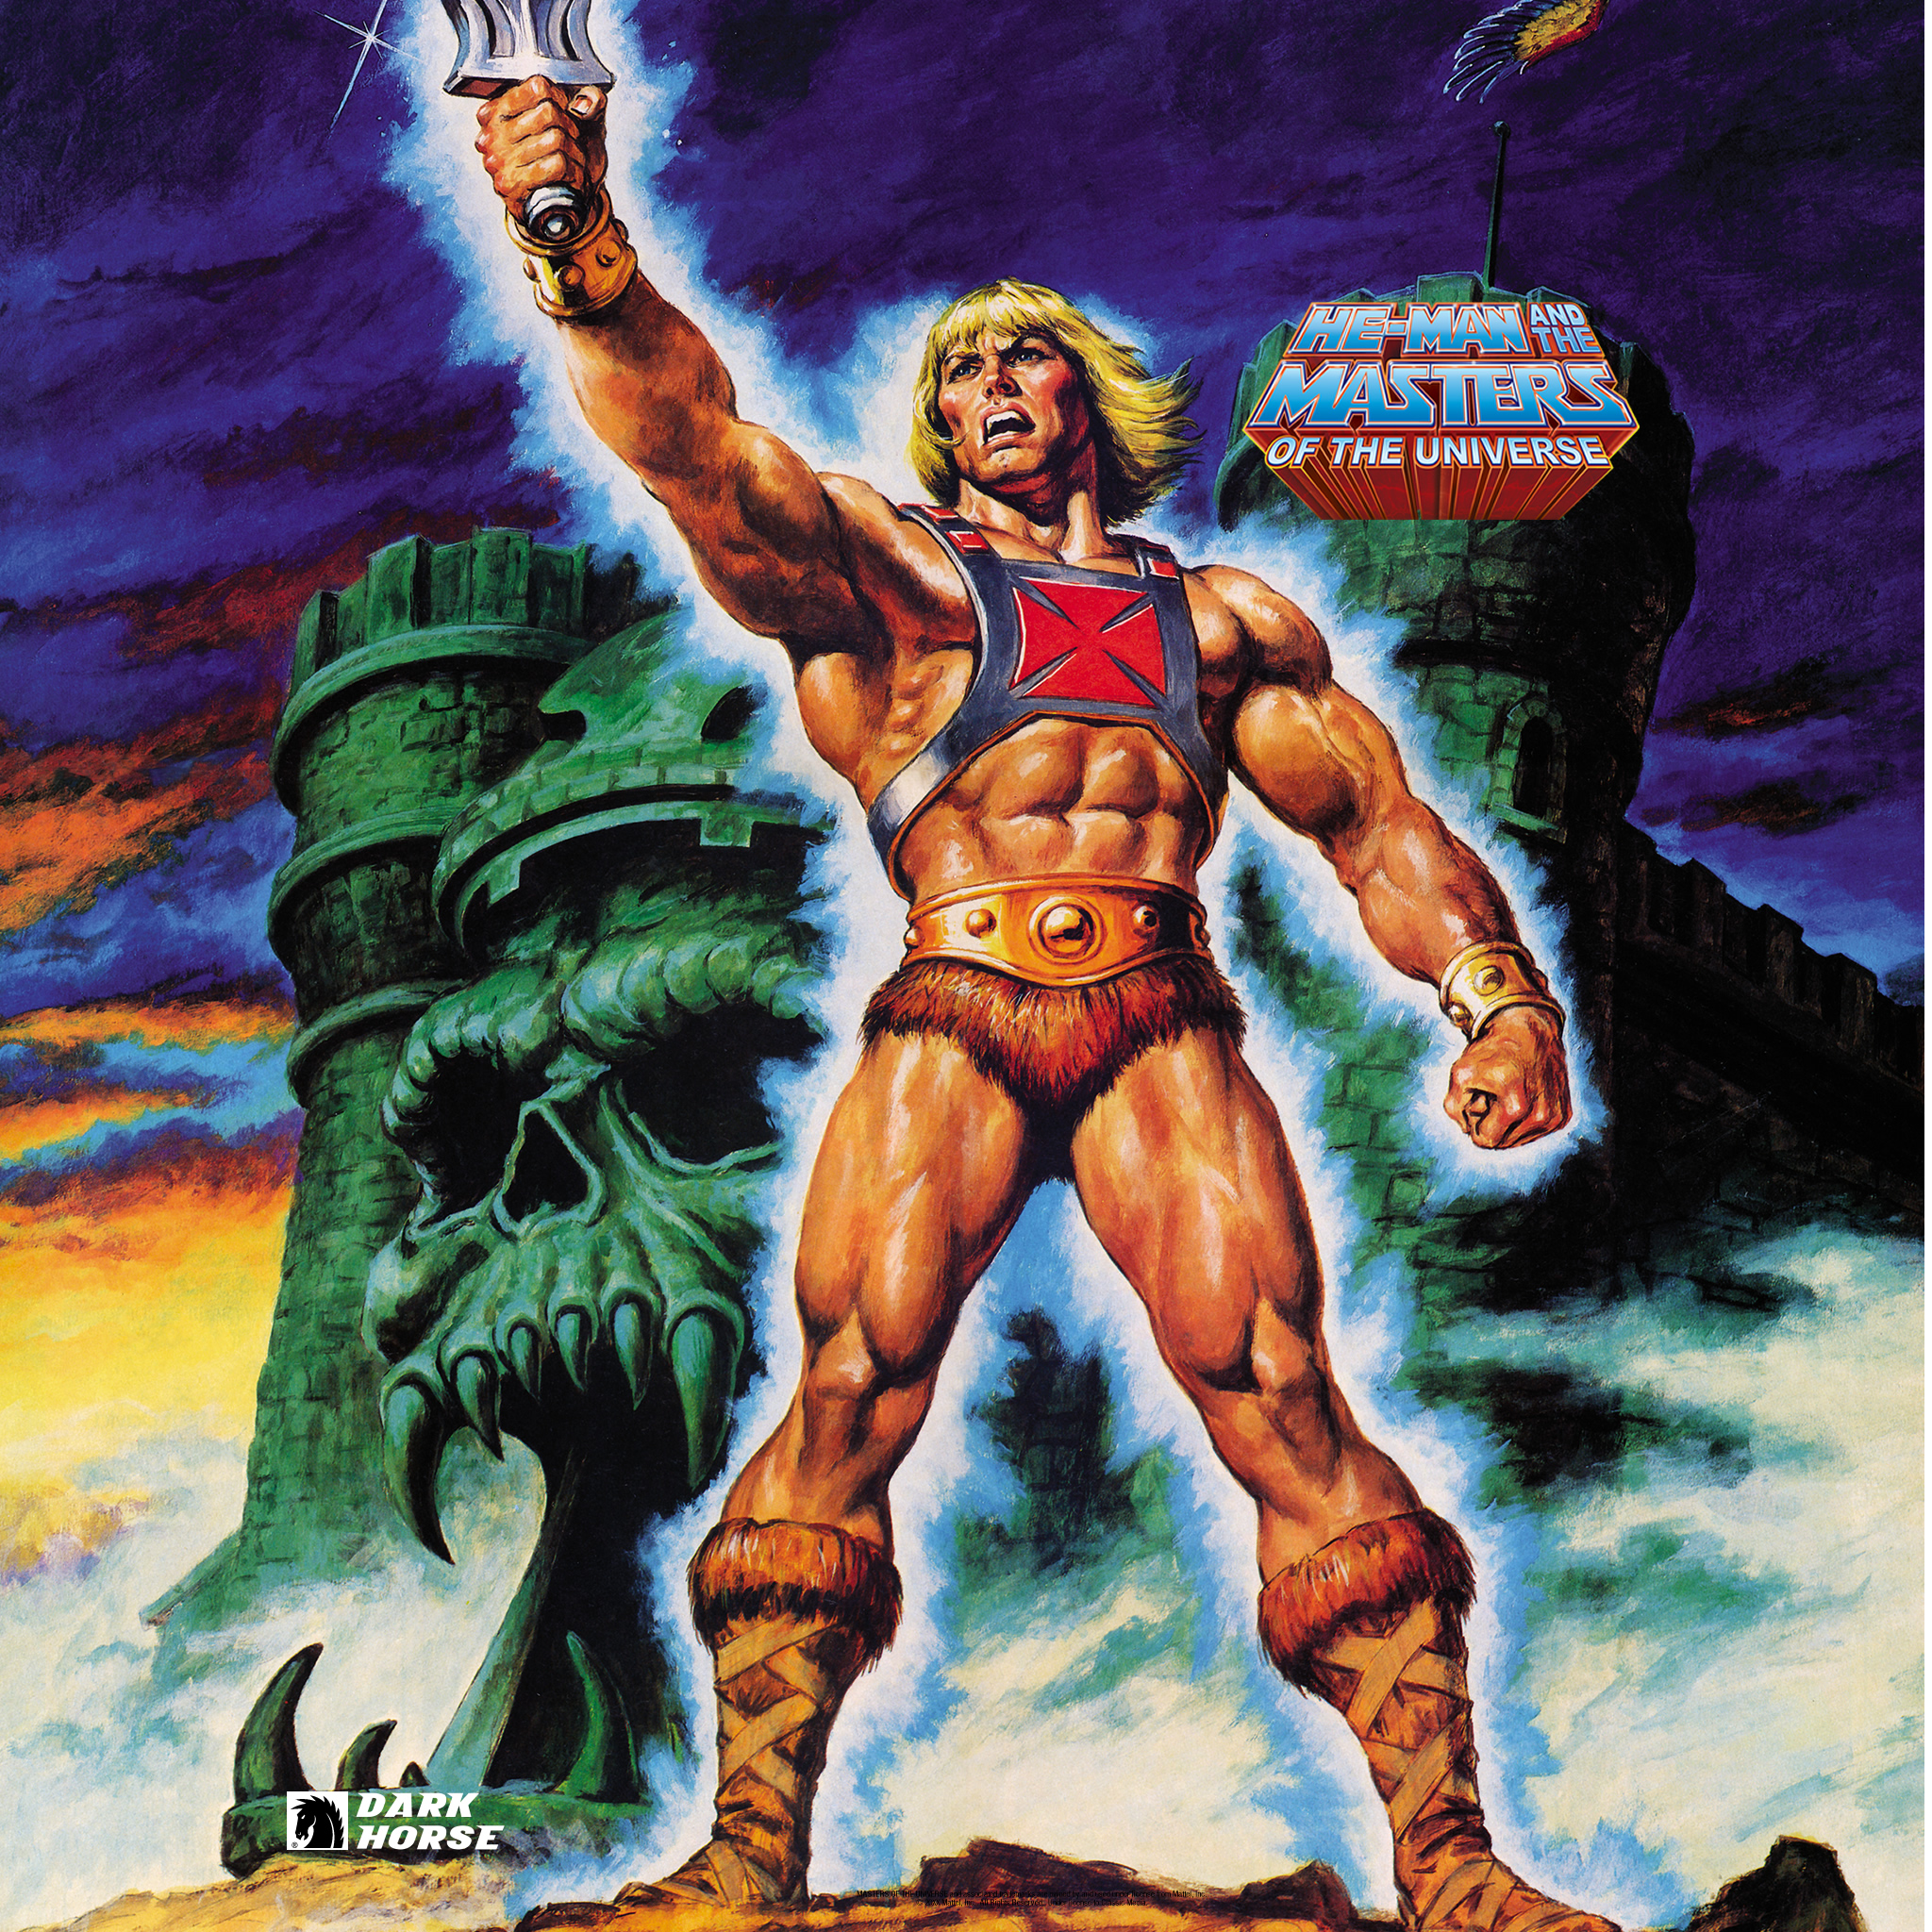 He Man And The Masters Of The Universe Desktops Dark Horse